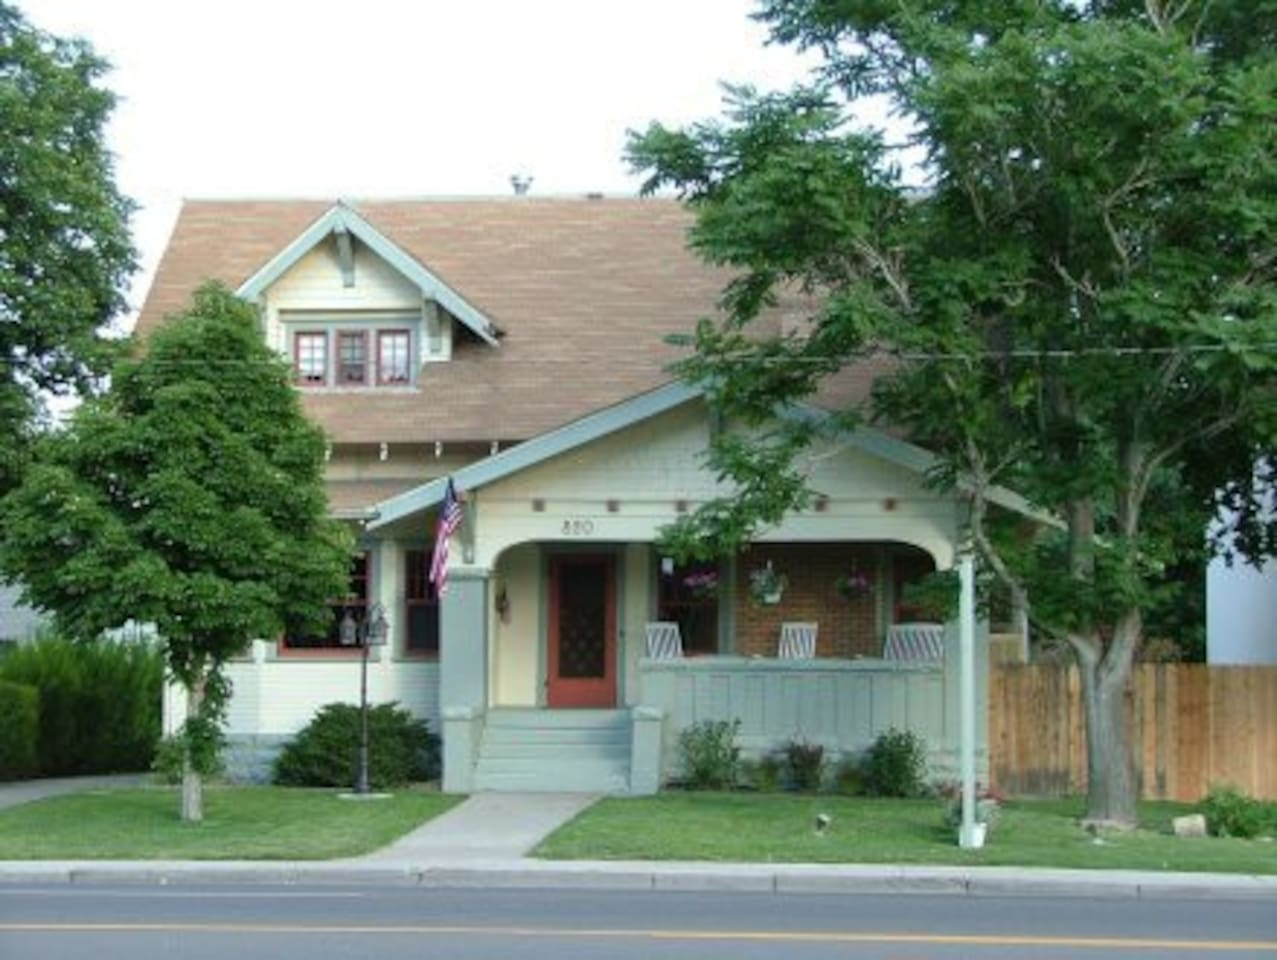 The front of the Bed & Breakfast